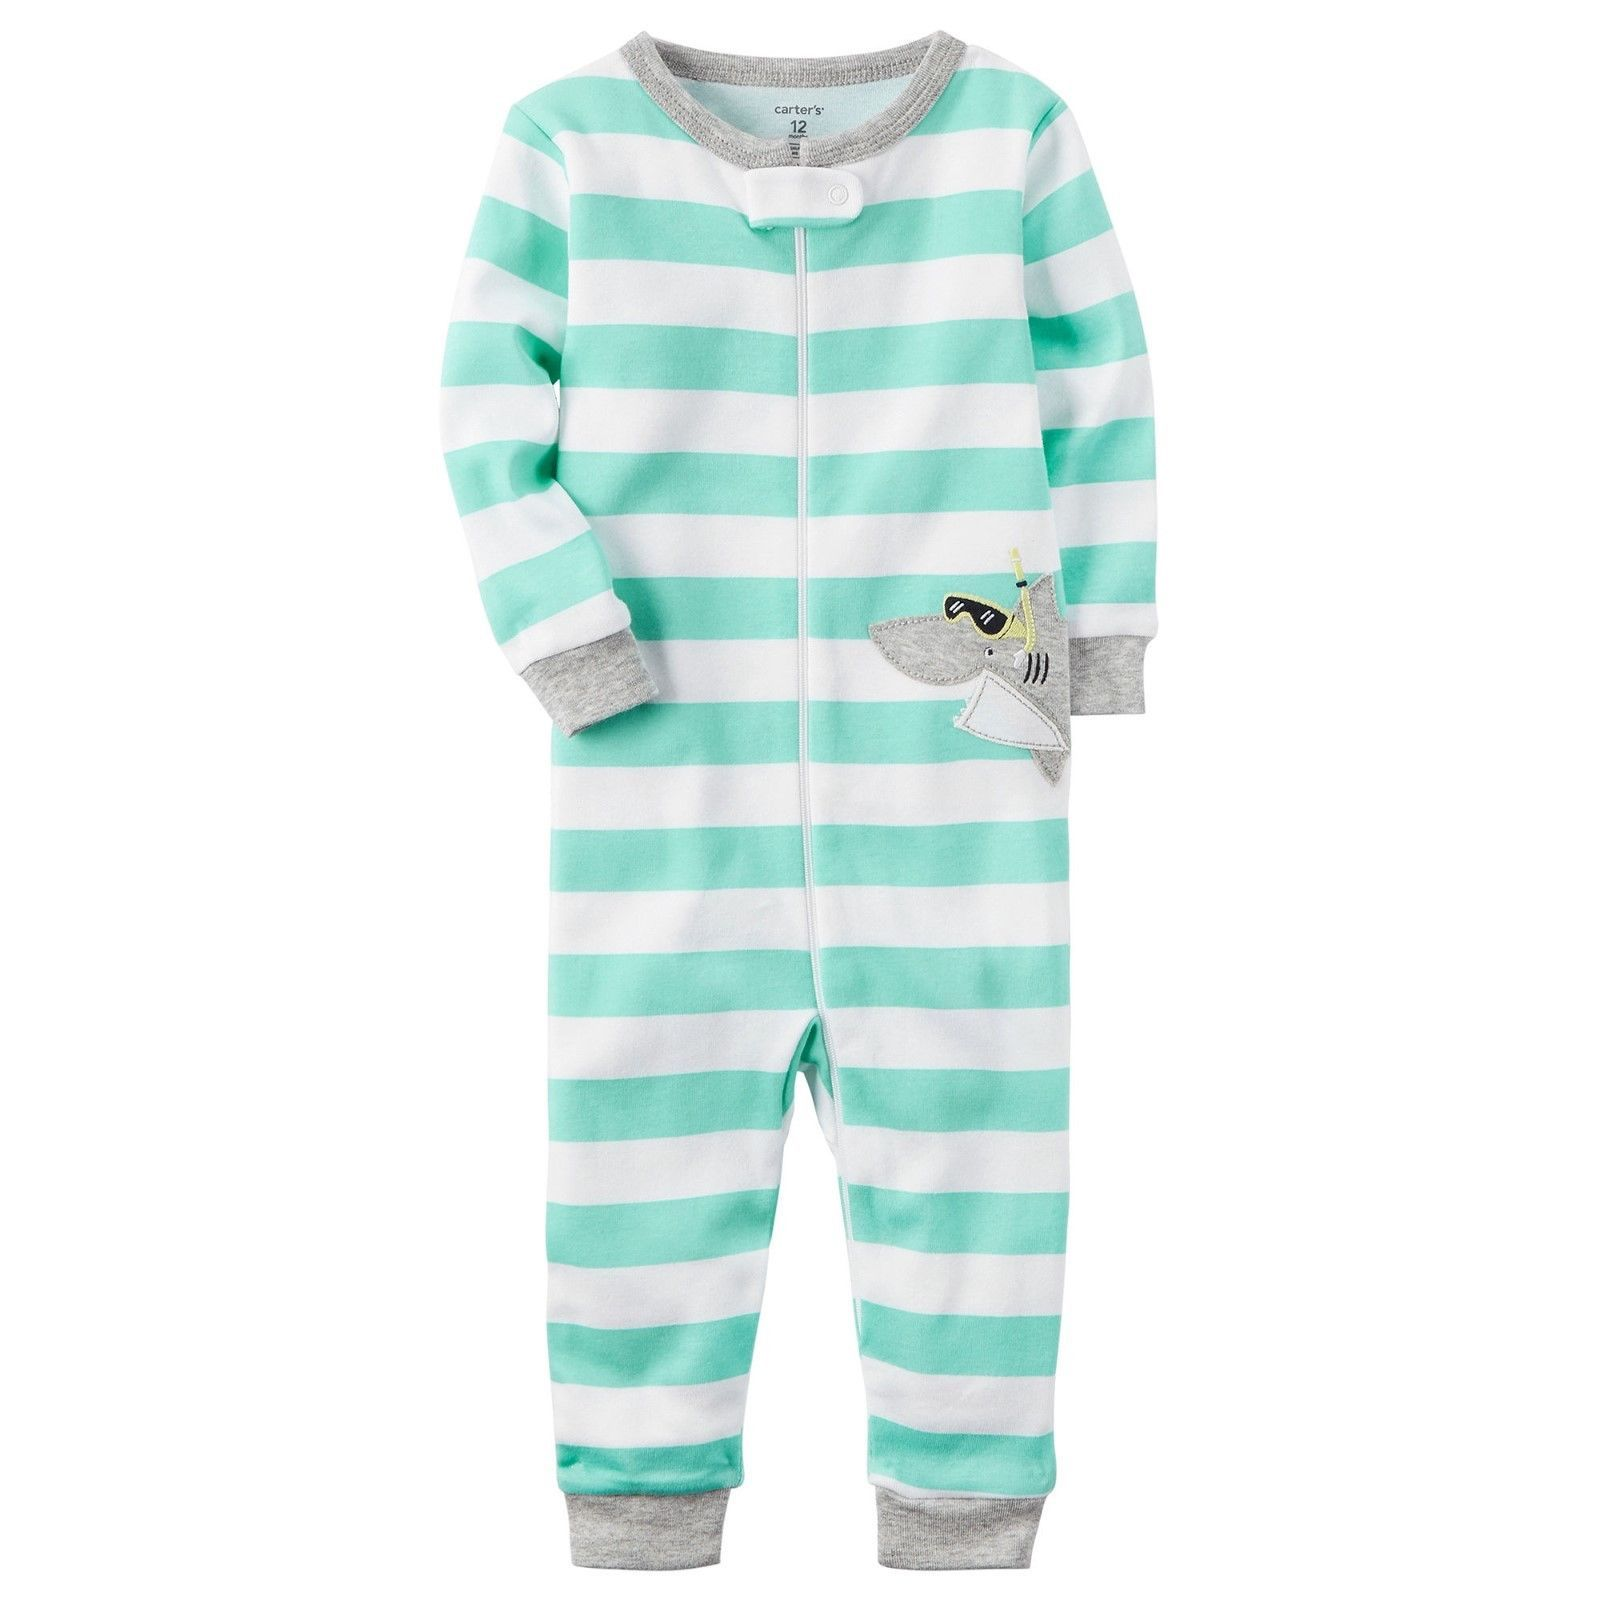 2530ba541a13 NWT Carters Baby Boy Footless PJ Coveralls and 17 similar items